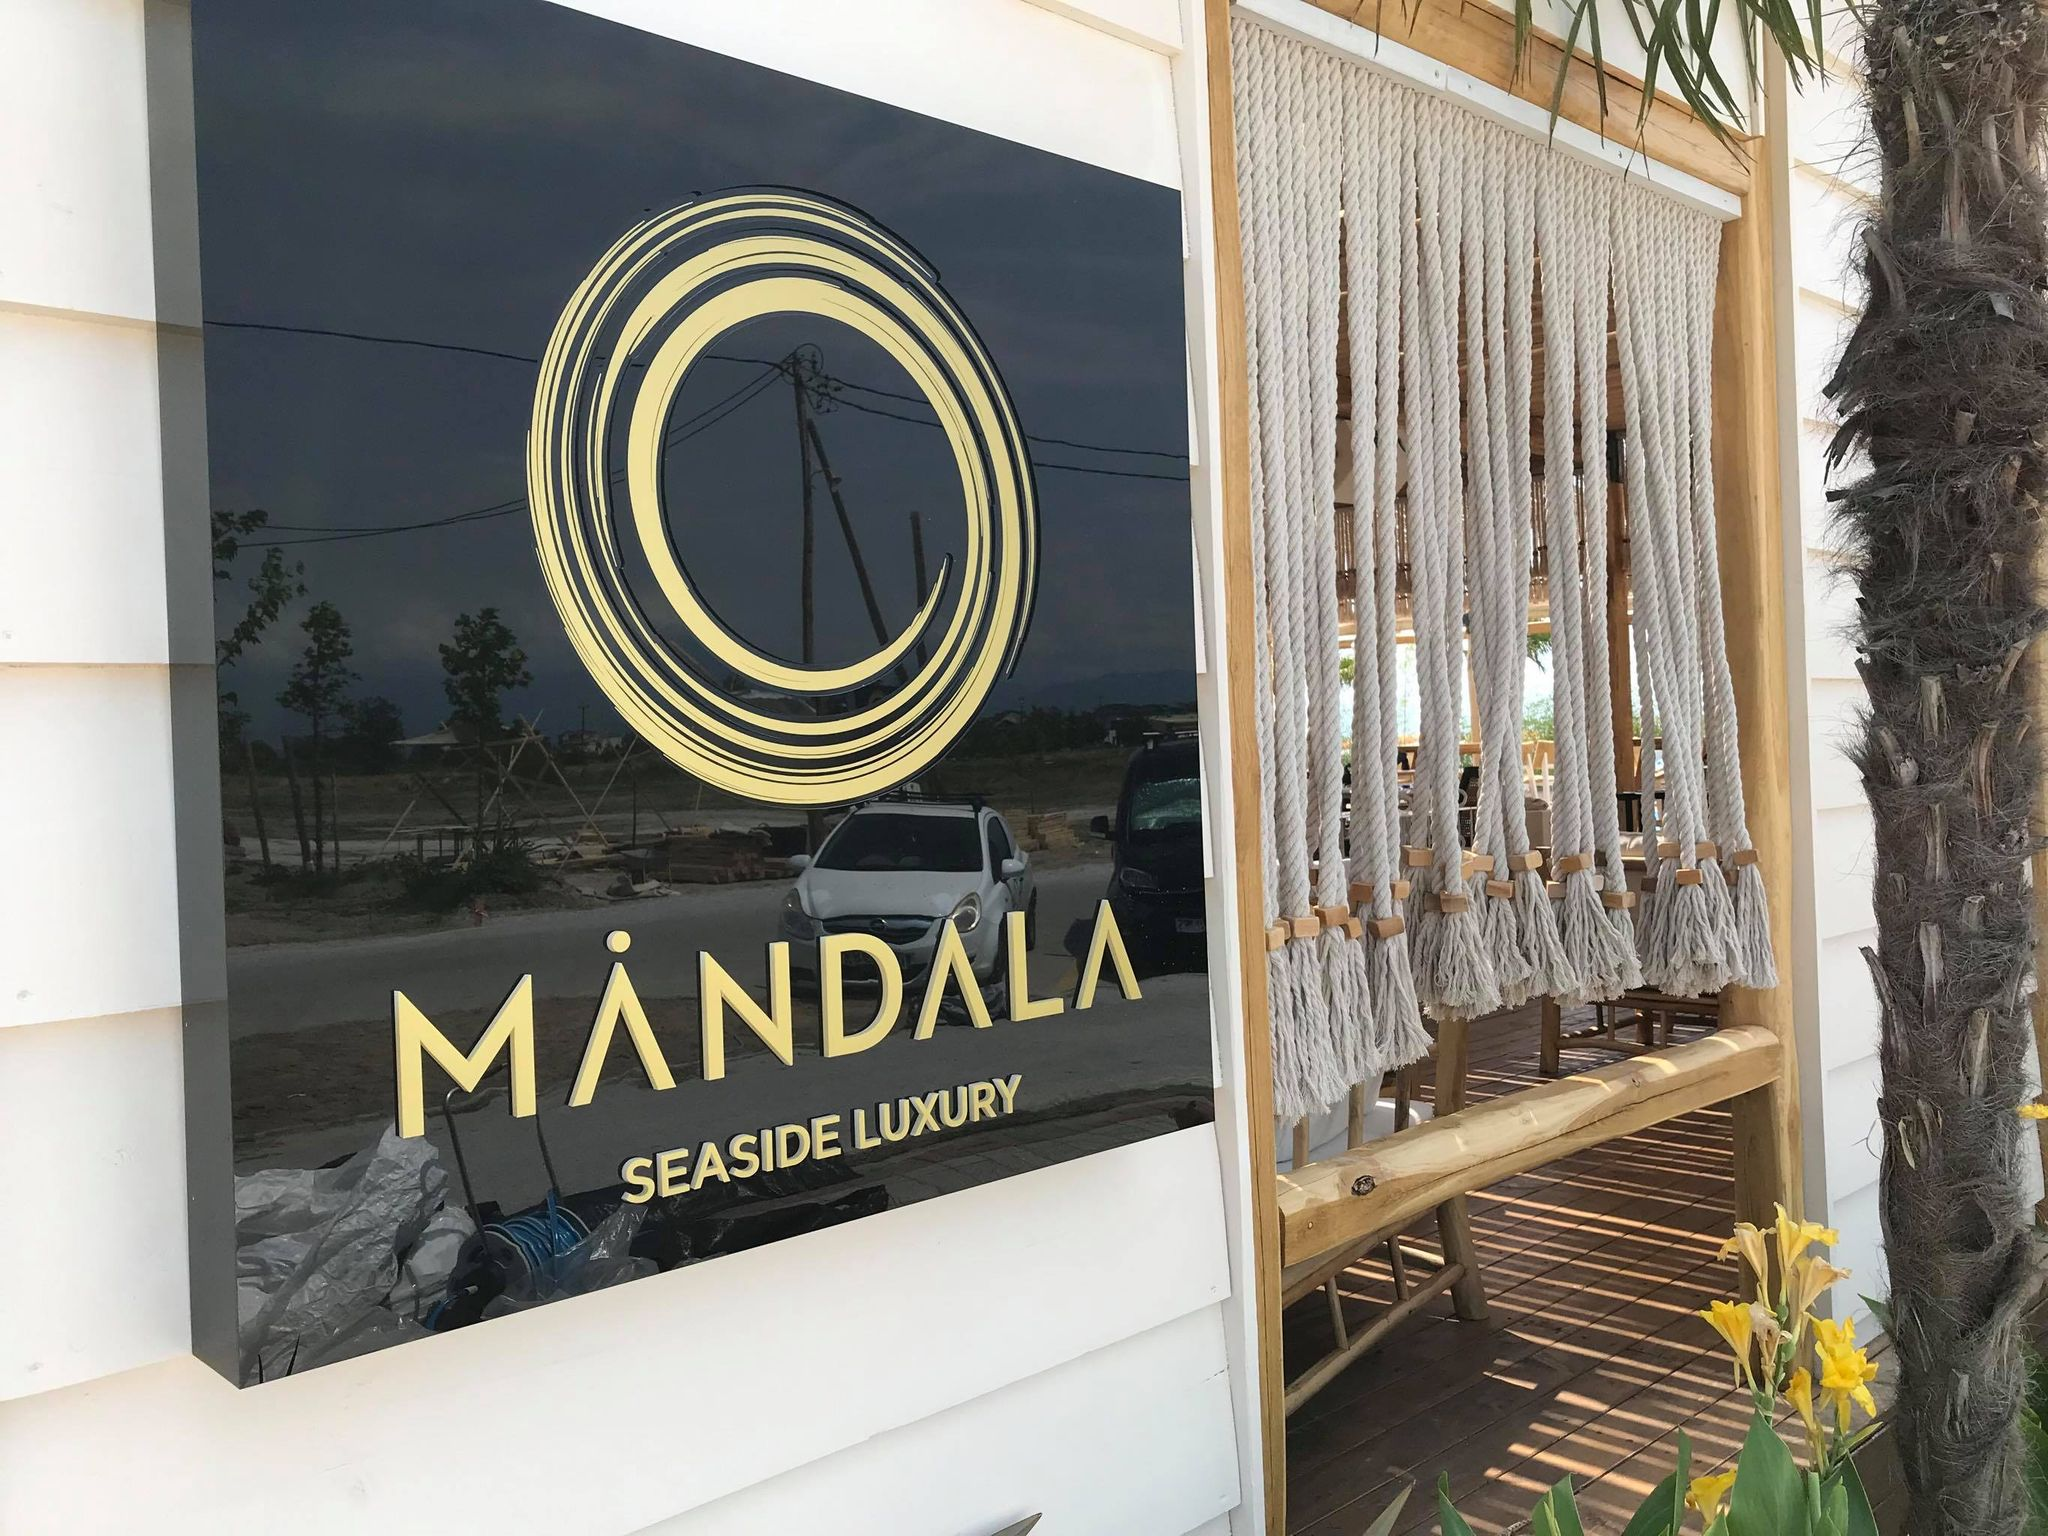 MANDALA Seaside Luxury, παραλία Κατερίνης, Main Entrance